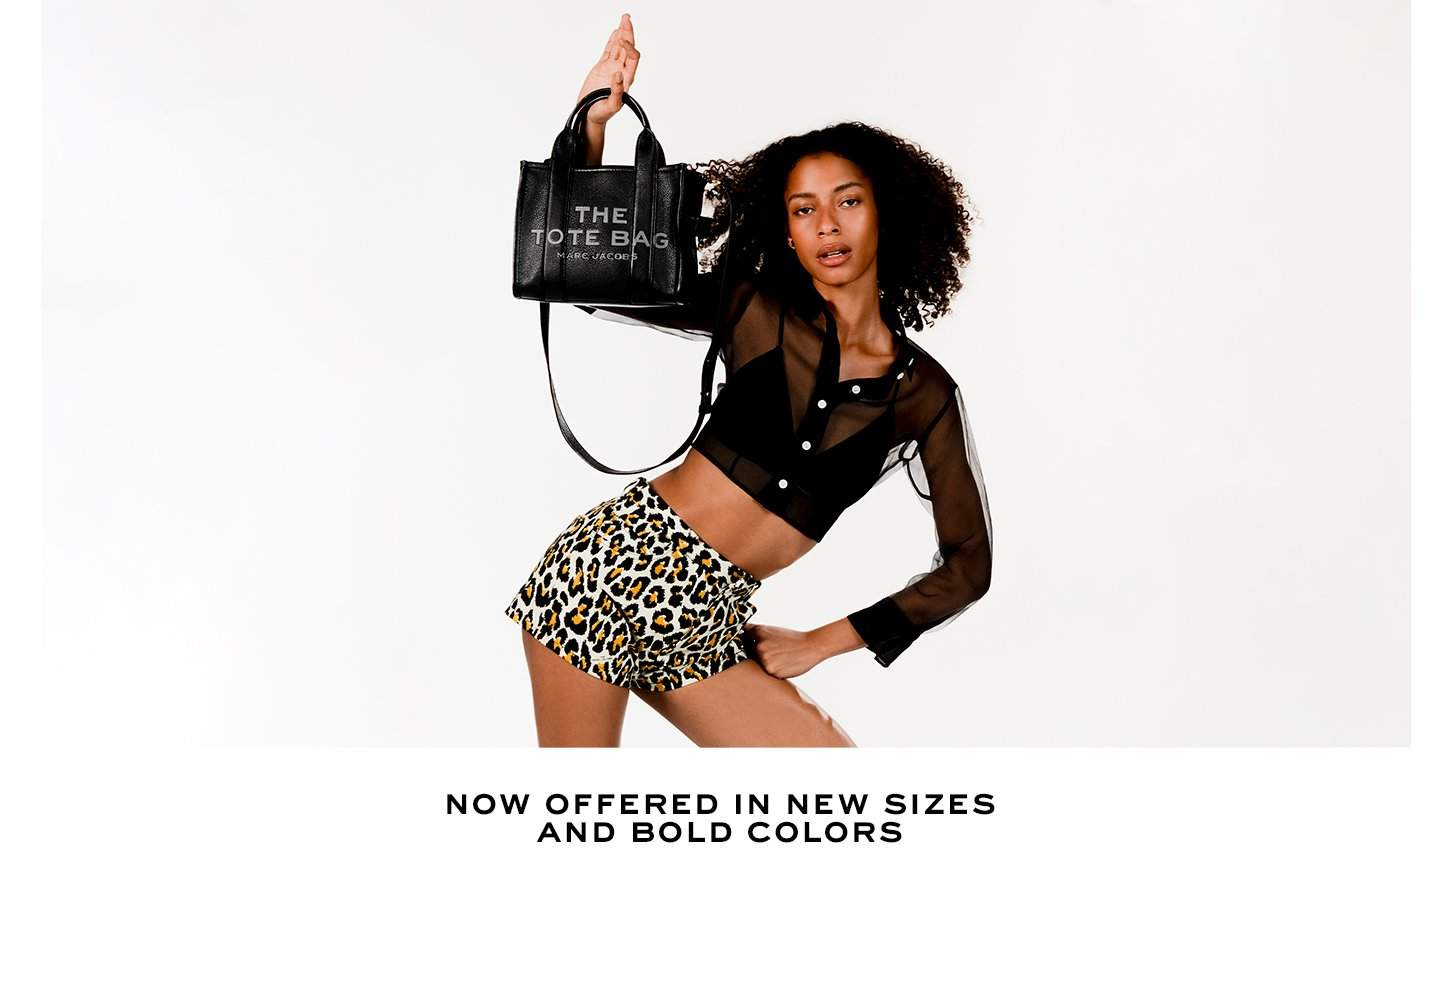 Now offered in new sizes and bold colors.